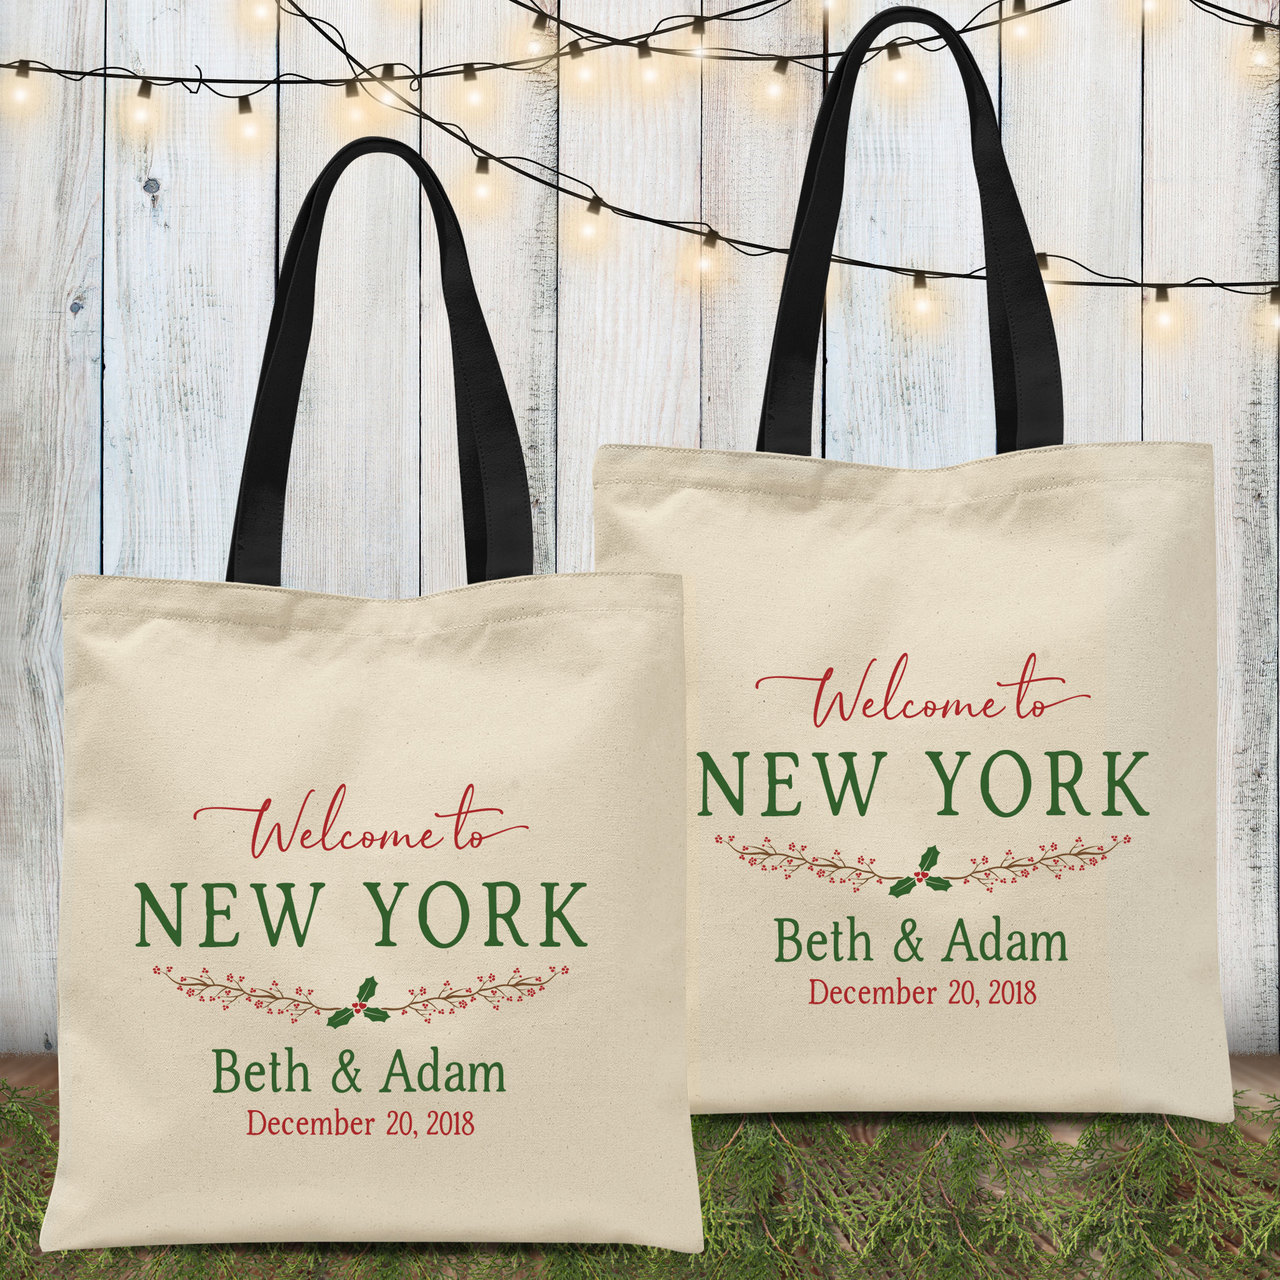 Wedding Welcome Bags.Custom Tote Bags Holiday Holly Wedding Welcome